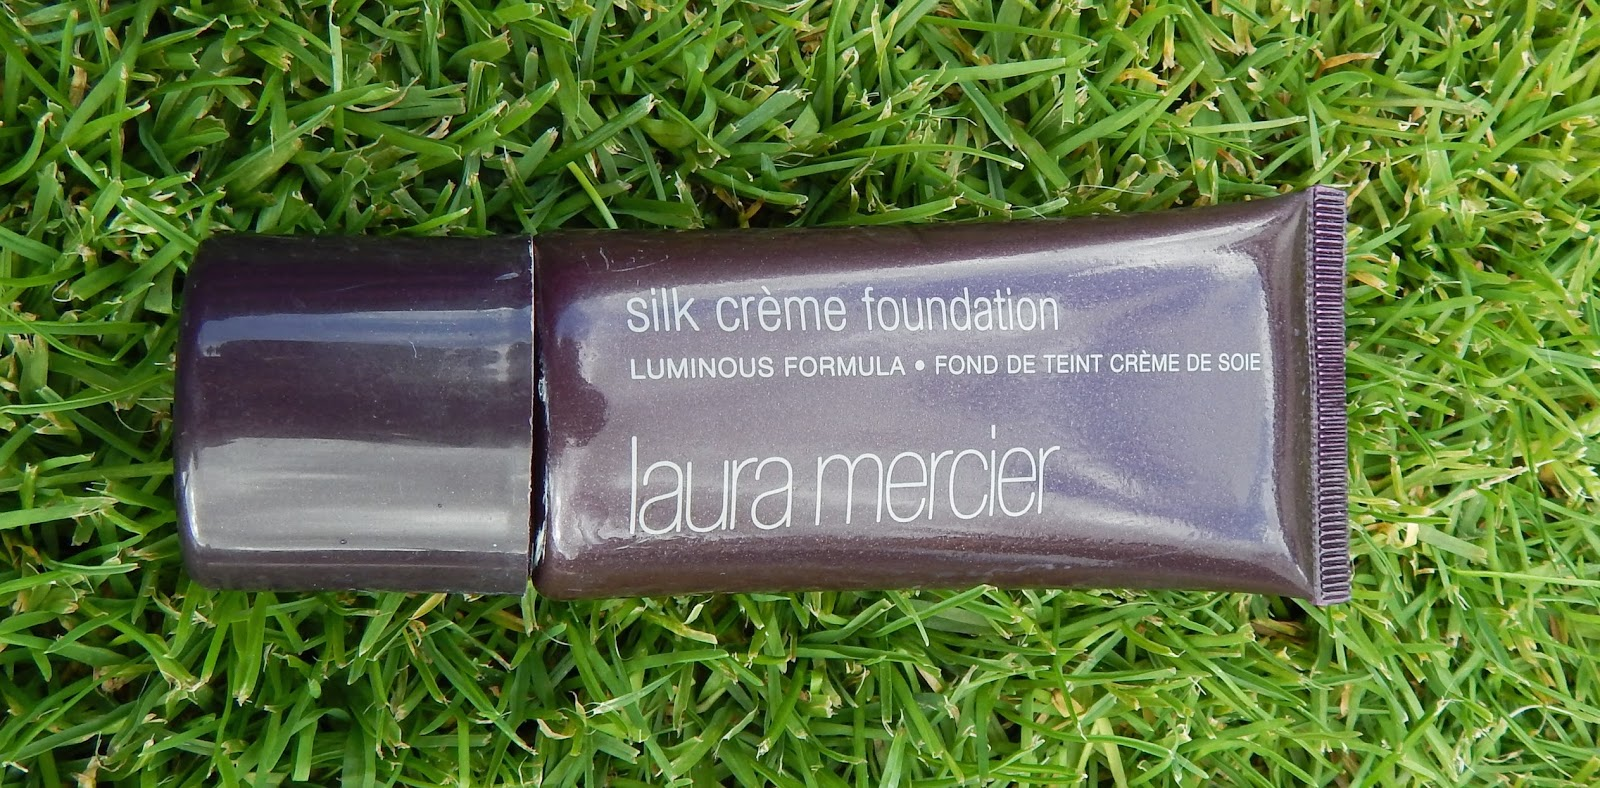 Laura Mercier Silk Creme Foundation